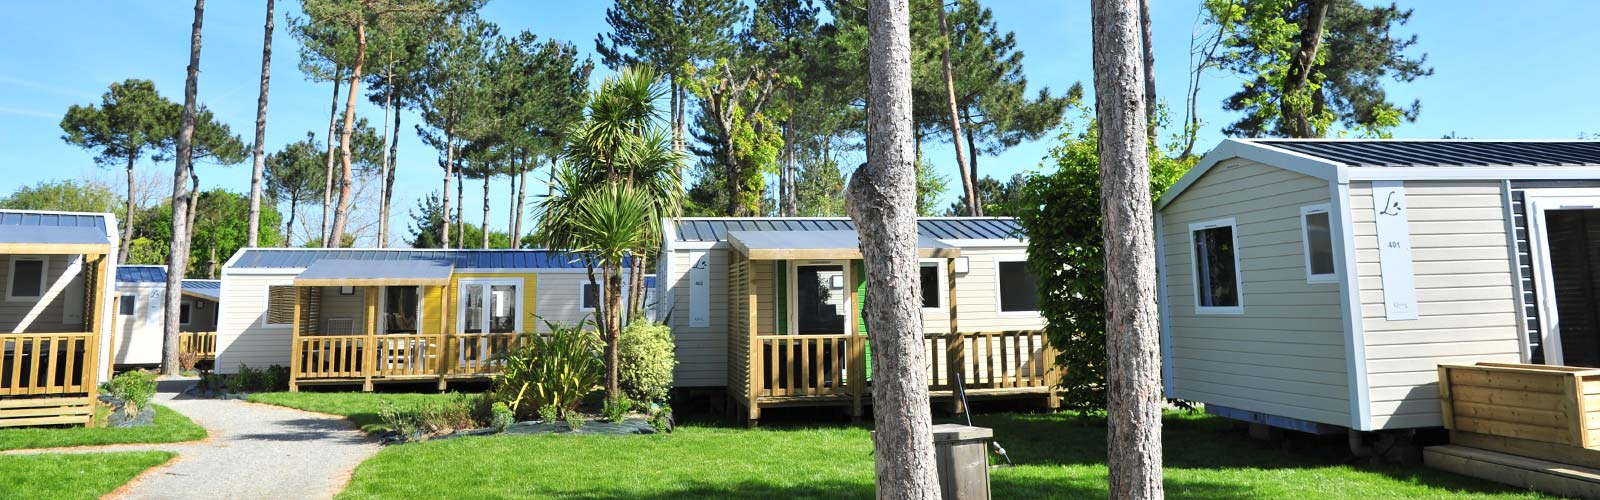 Luxury and comfort mobile homes at Le Fief campsite in Loire-Atlantique